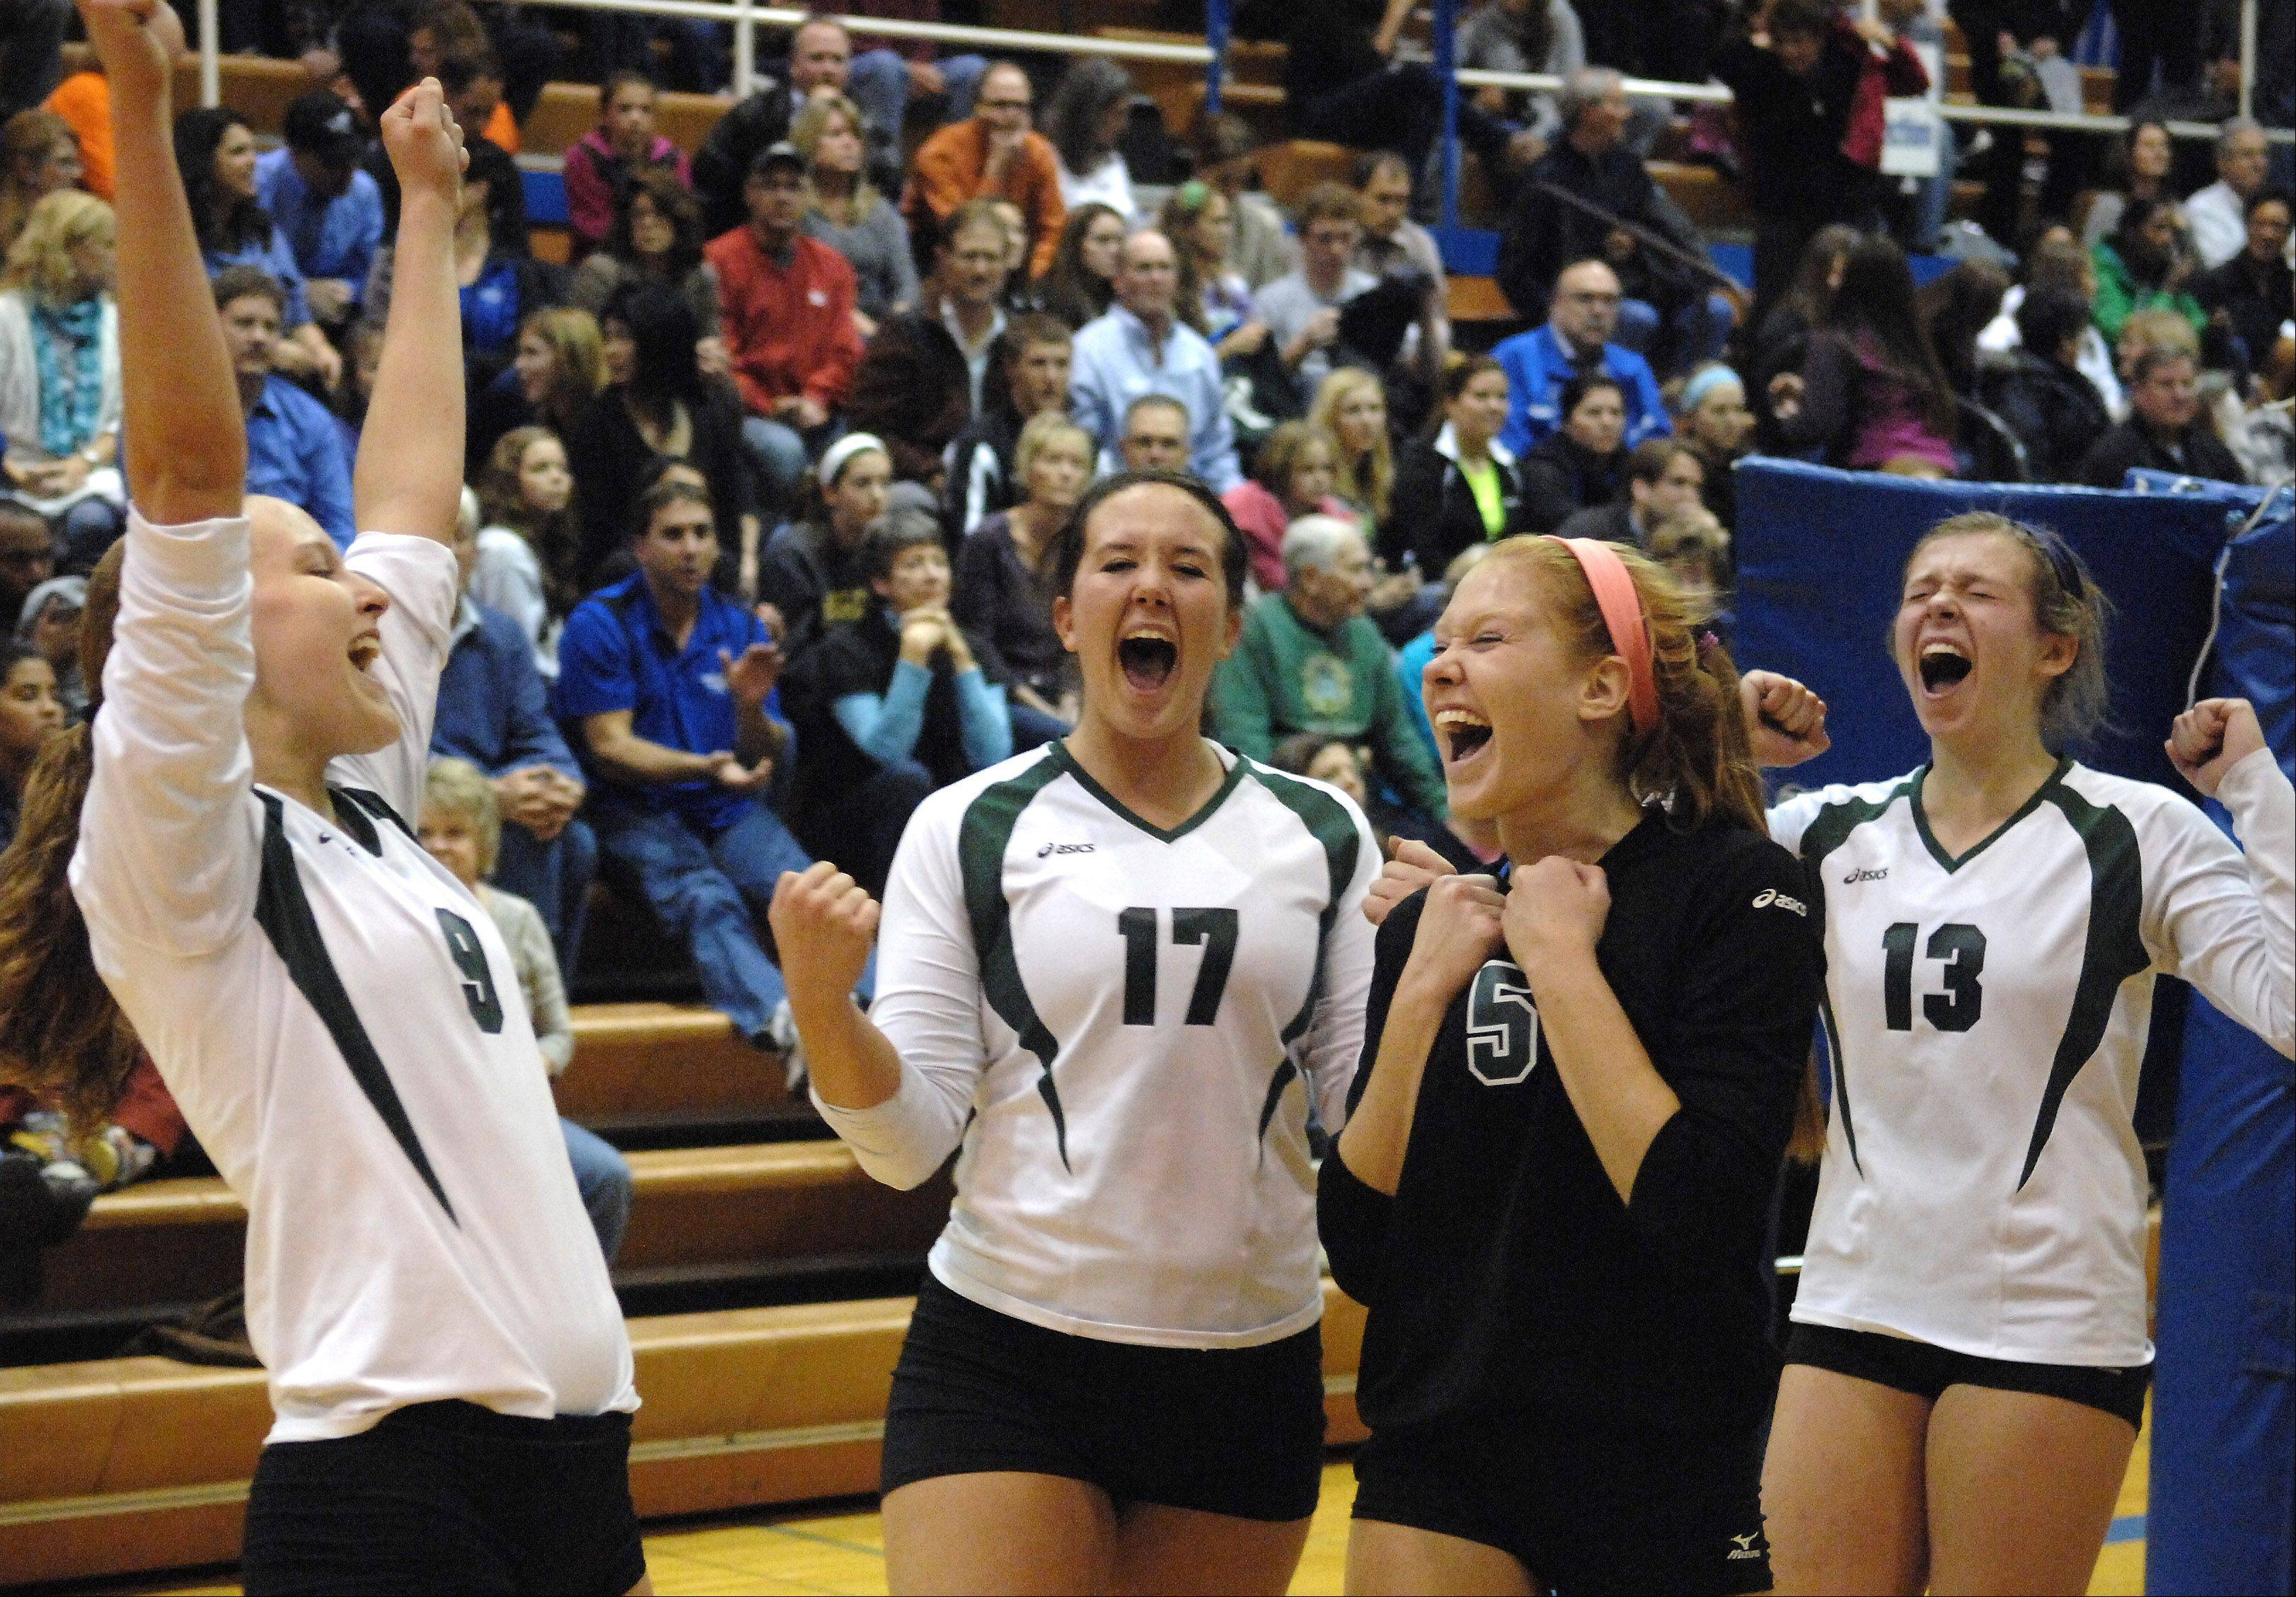 Glenbard West players, from left, Amanda Perry, Caroline Jenkins, Meg Demaar and Megan Wagner celebrate their win over St. Charles North during Tuesday's sectional semifinals at Larkin High School in Elgin.